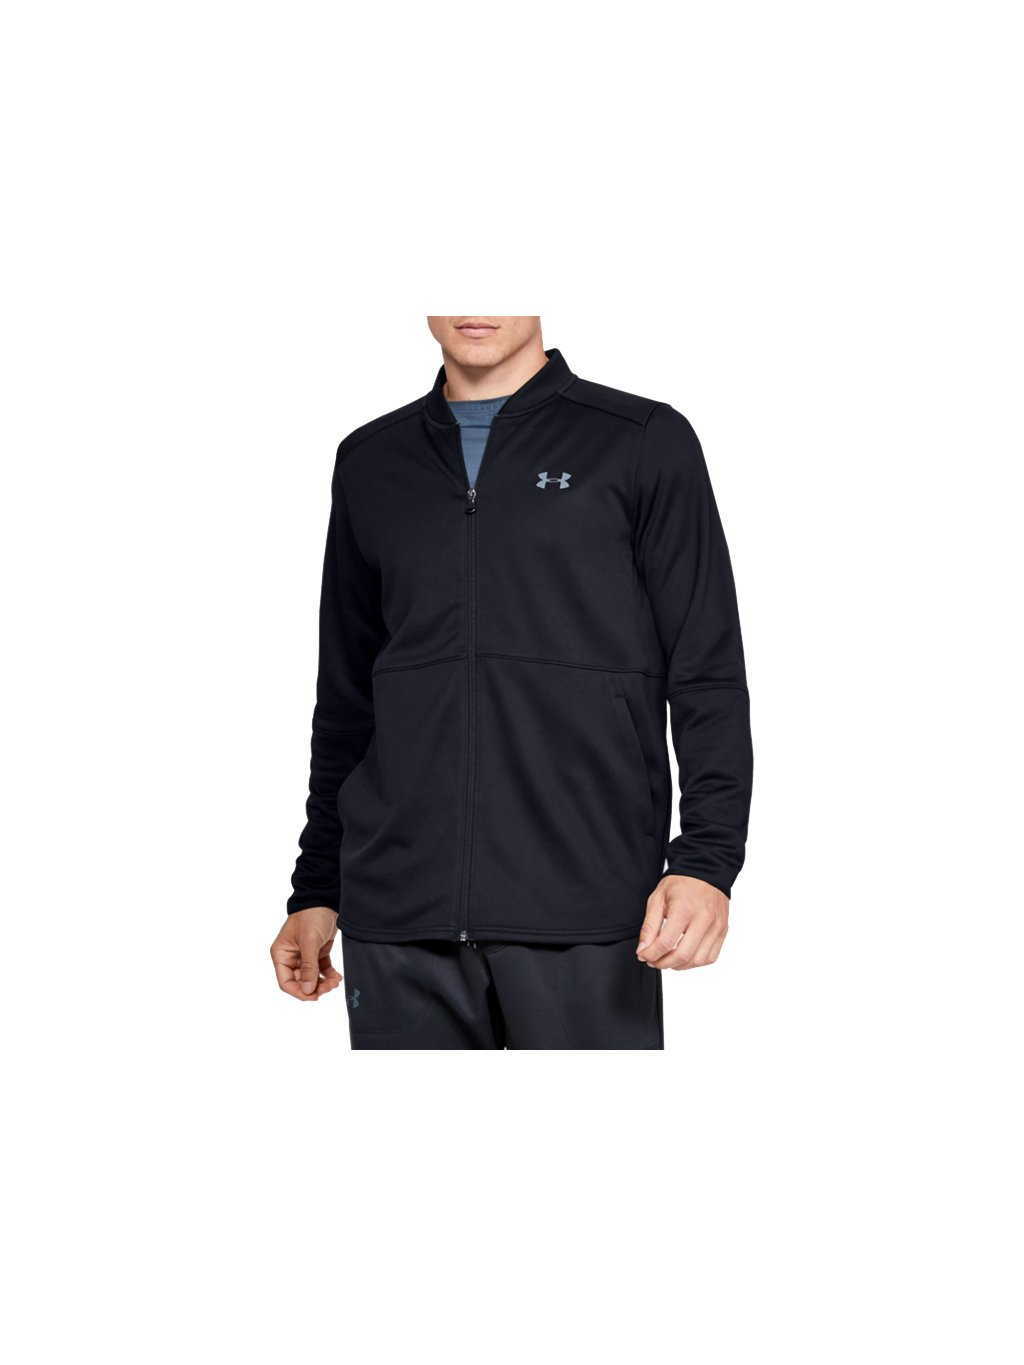 UNDER ARMOUR MK1 WARMUP BOMBER  1345304-001